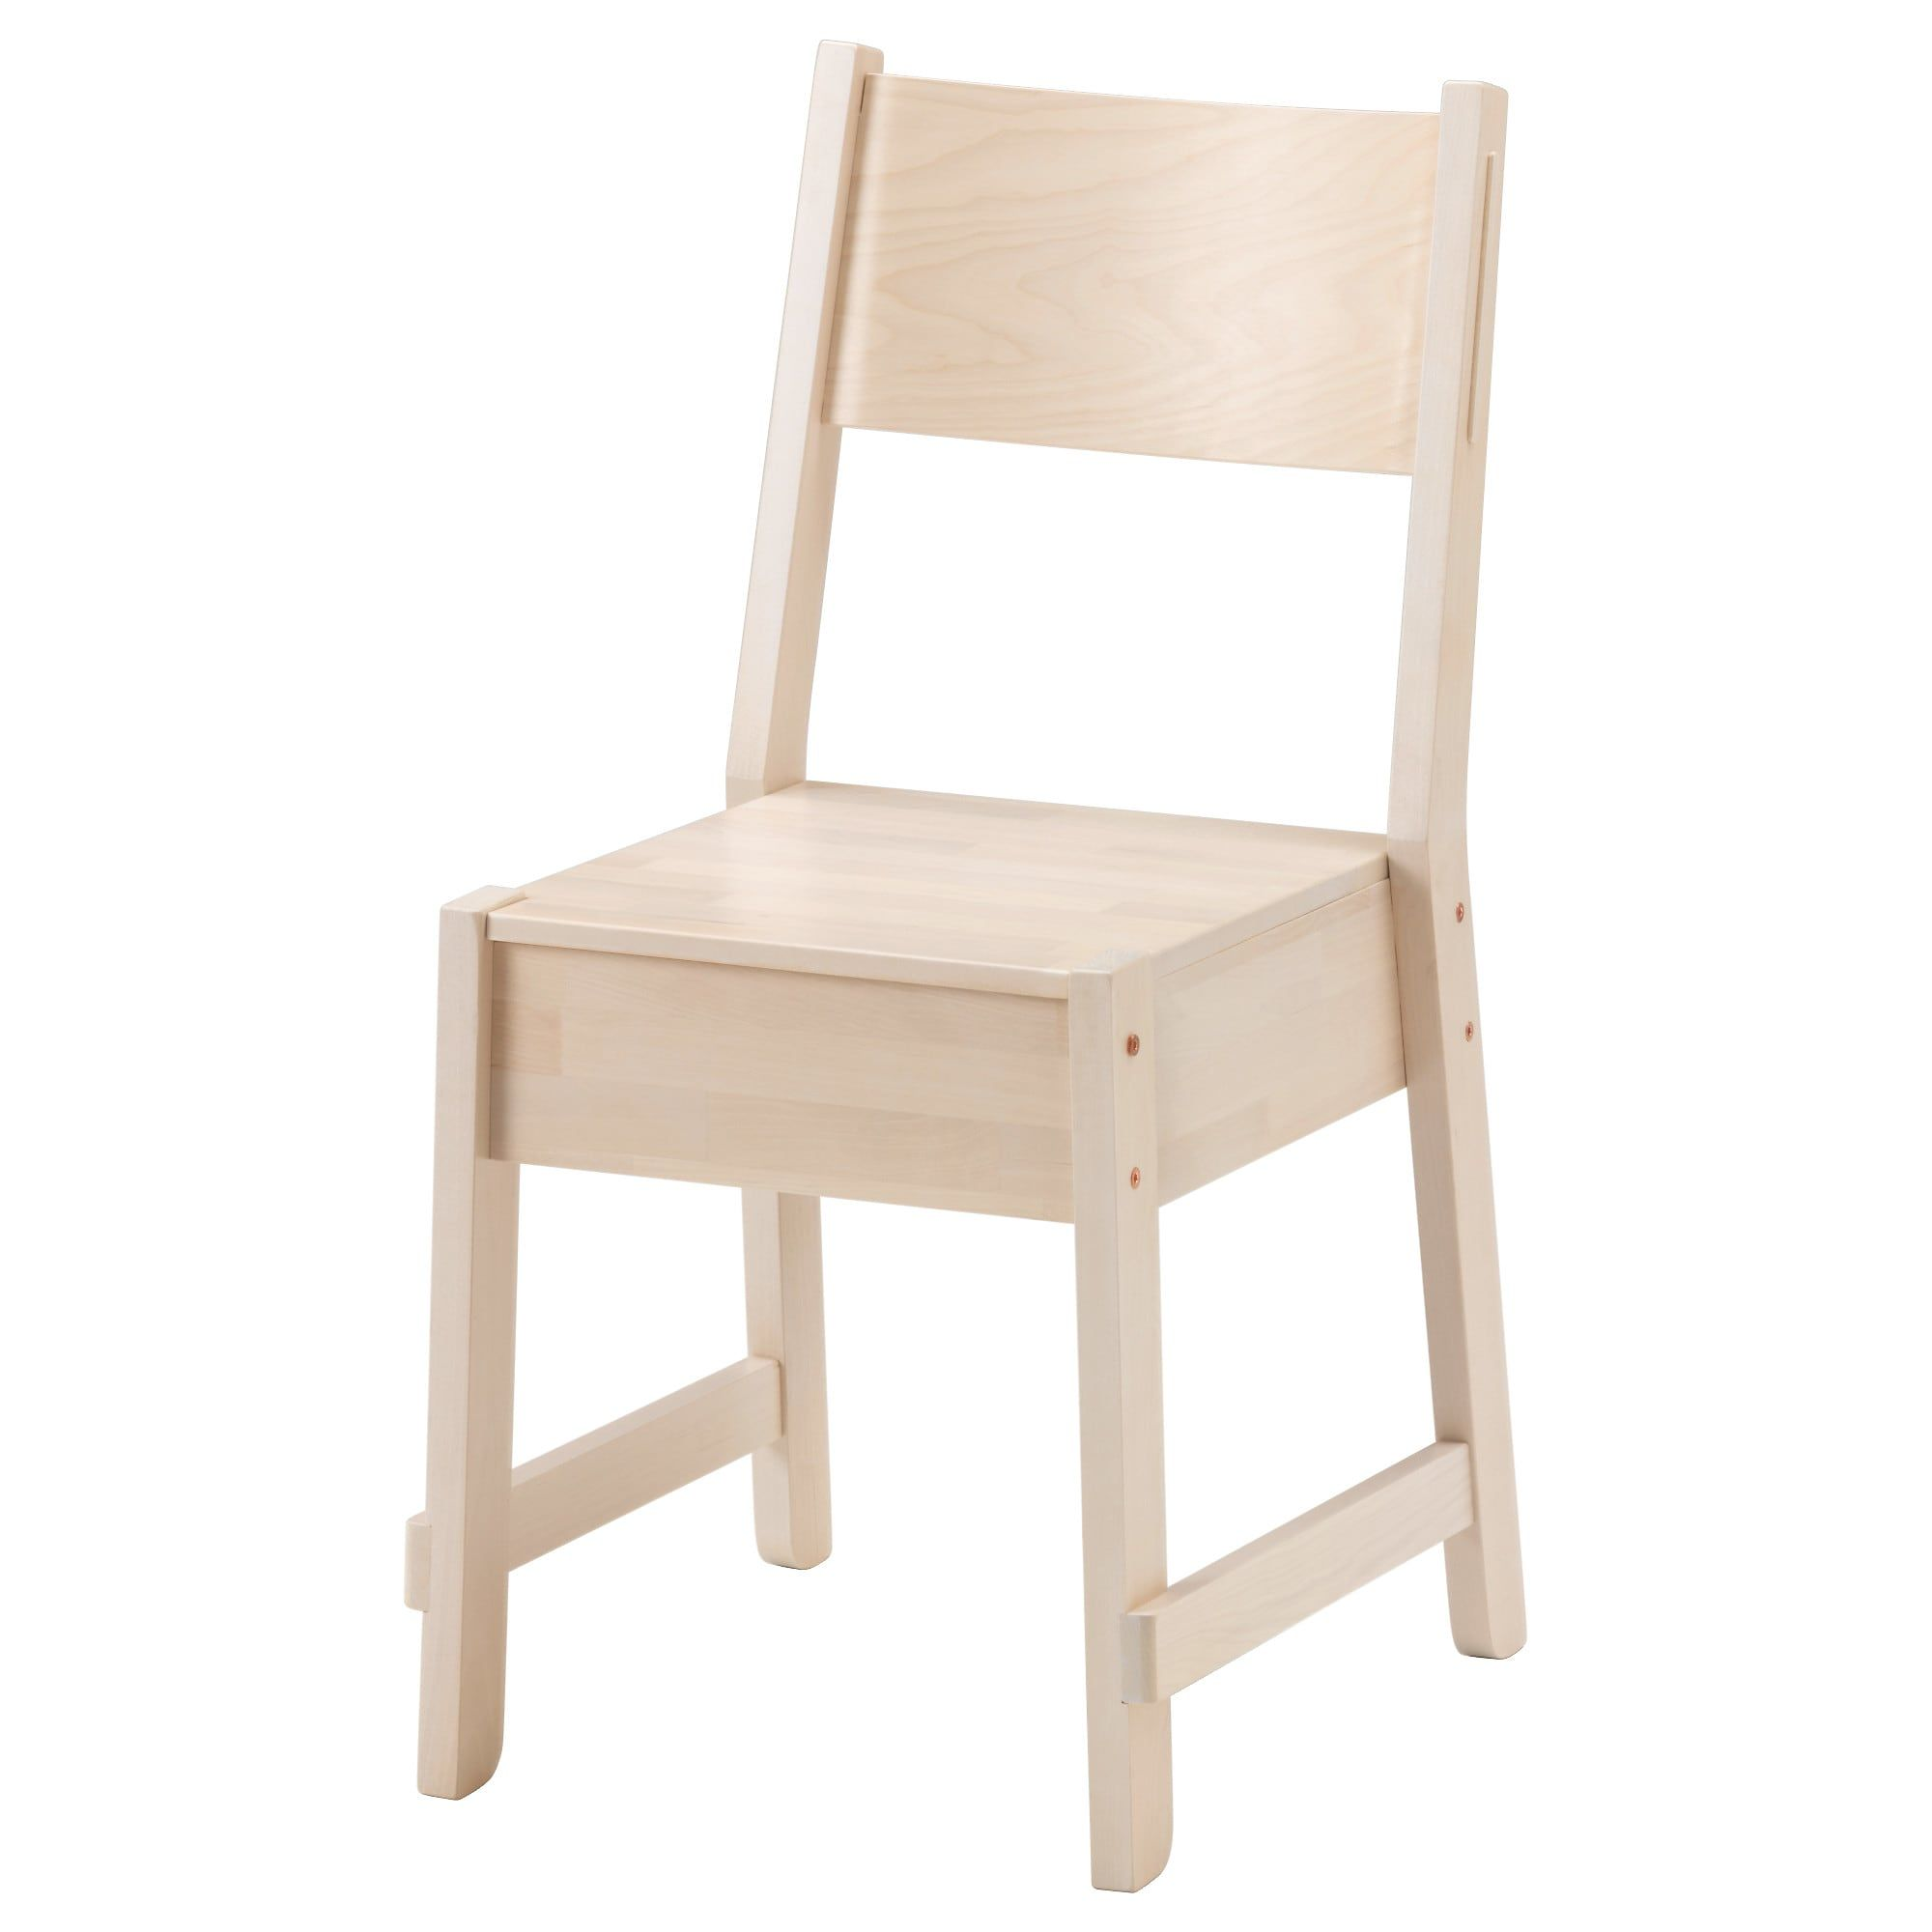 NorrÅker chair white birch in furniture to buy pinterest